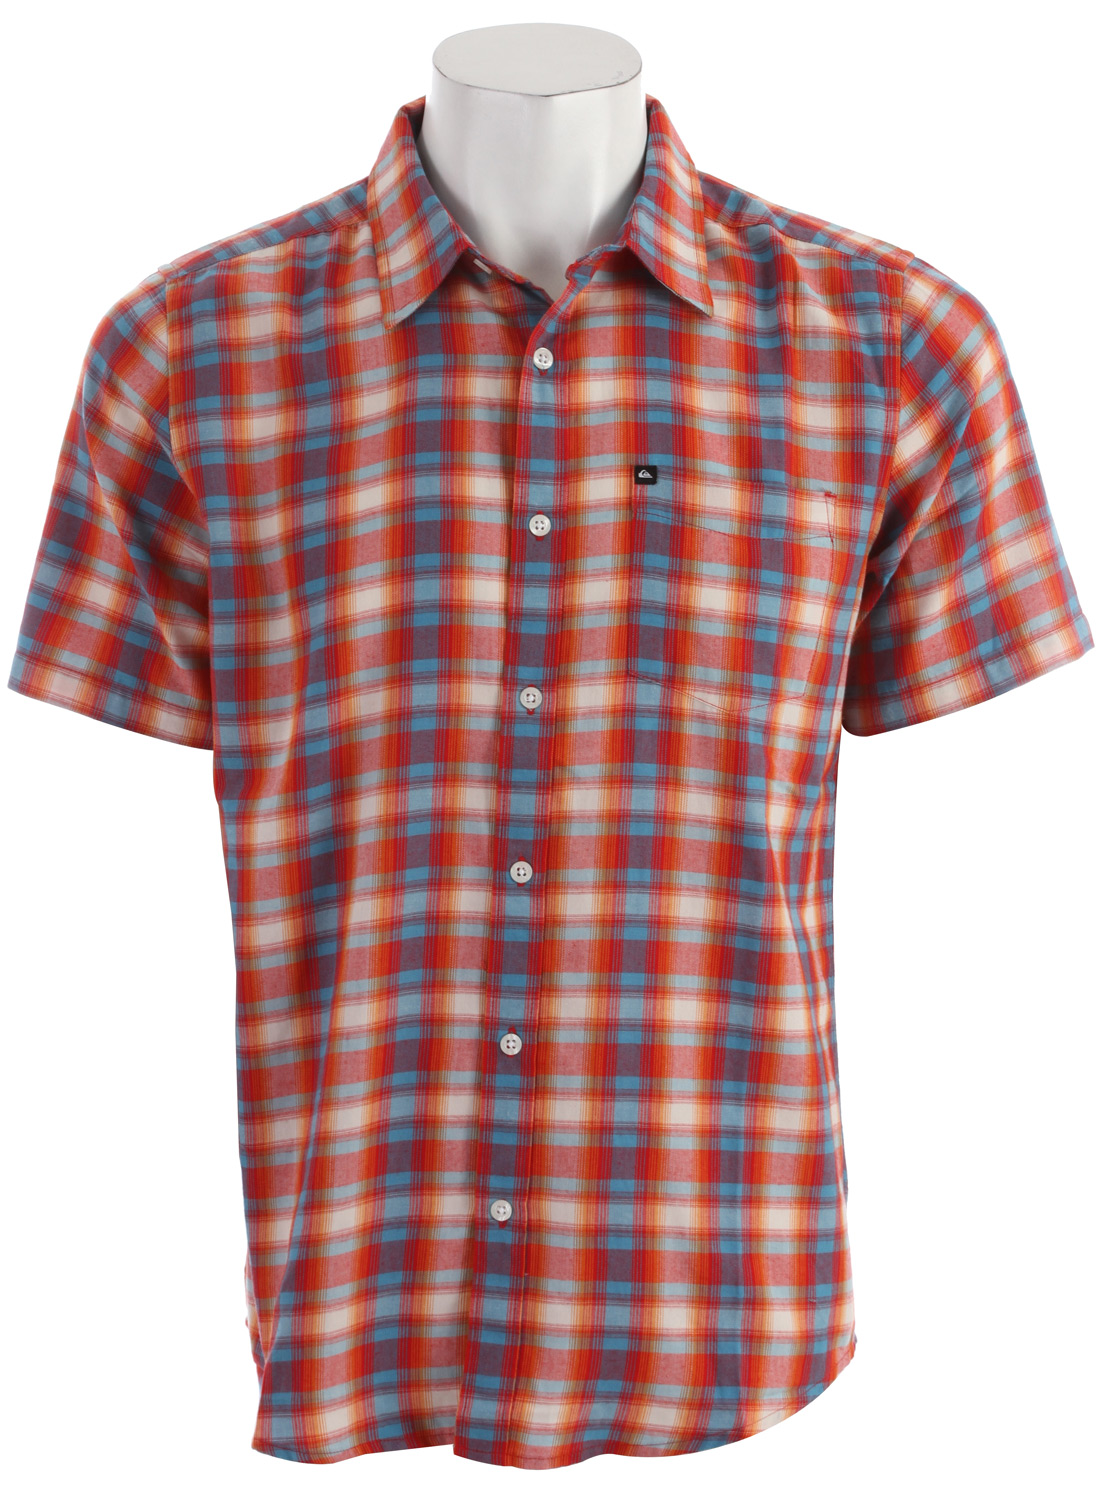 Surf Key Features of the Quiksilver Flash Surf Shirt:  Regular fit  60% cotton 40% polyester blend  S/S yarn dye mid scale hombre plaid  Single pocket  Exterior woven label and branded buttons  Garment wash w/ softener - $35.95